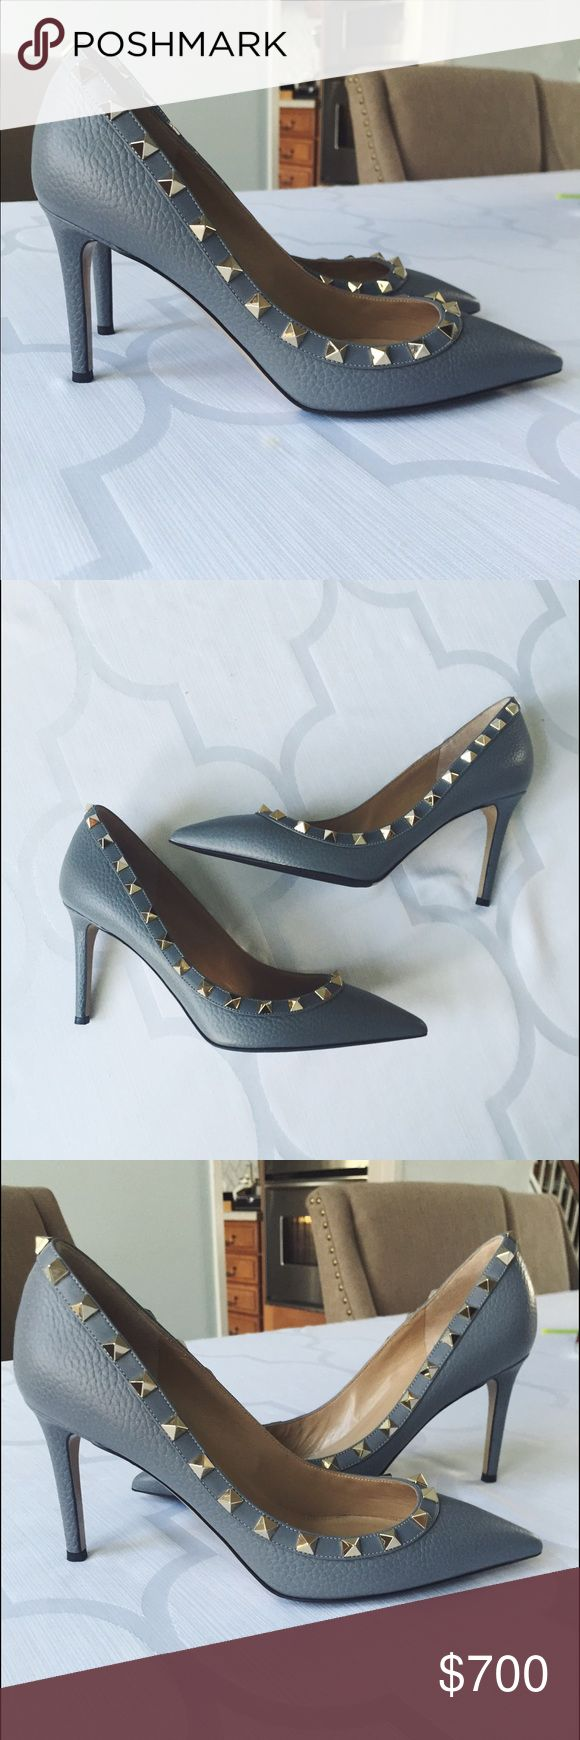 """Valentino Rockstud Pumps Authentic Valentino Rockstud Pointy Toe Pumps made of gray pebbled leather and embellished with signature gold studs. Heel is approx 3"""" Italian size 37, would fit a 6.5. Bottom of shoe has been resurfaced (see pic). Other than that there are no flaws. Retail $845. No box or dust bag. Valentino Shoes Heels"""